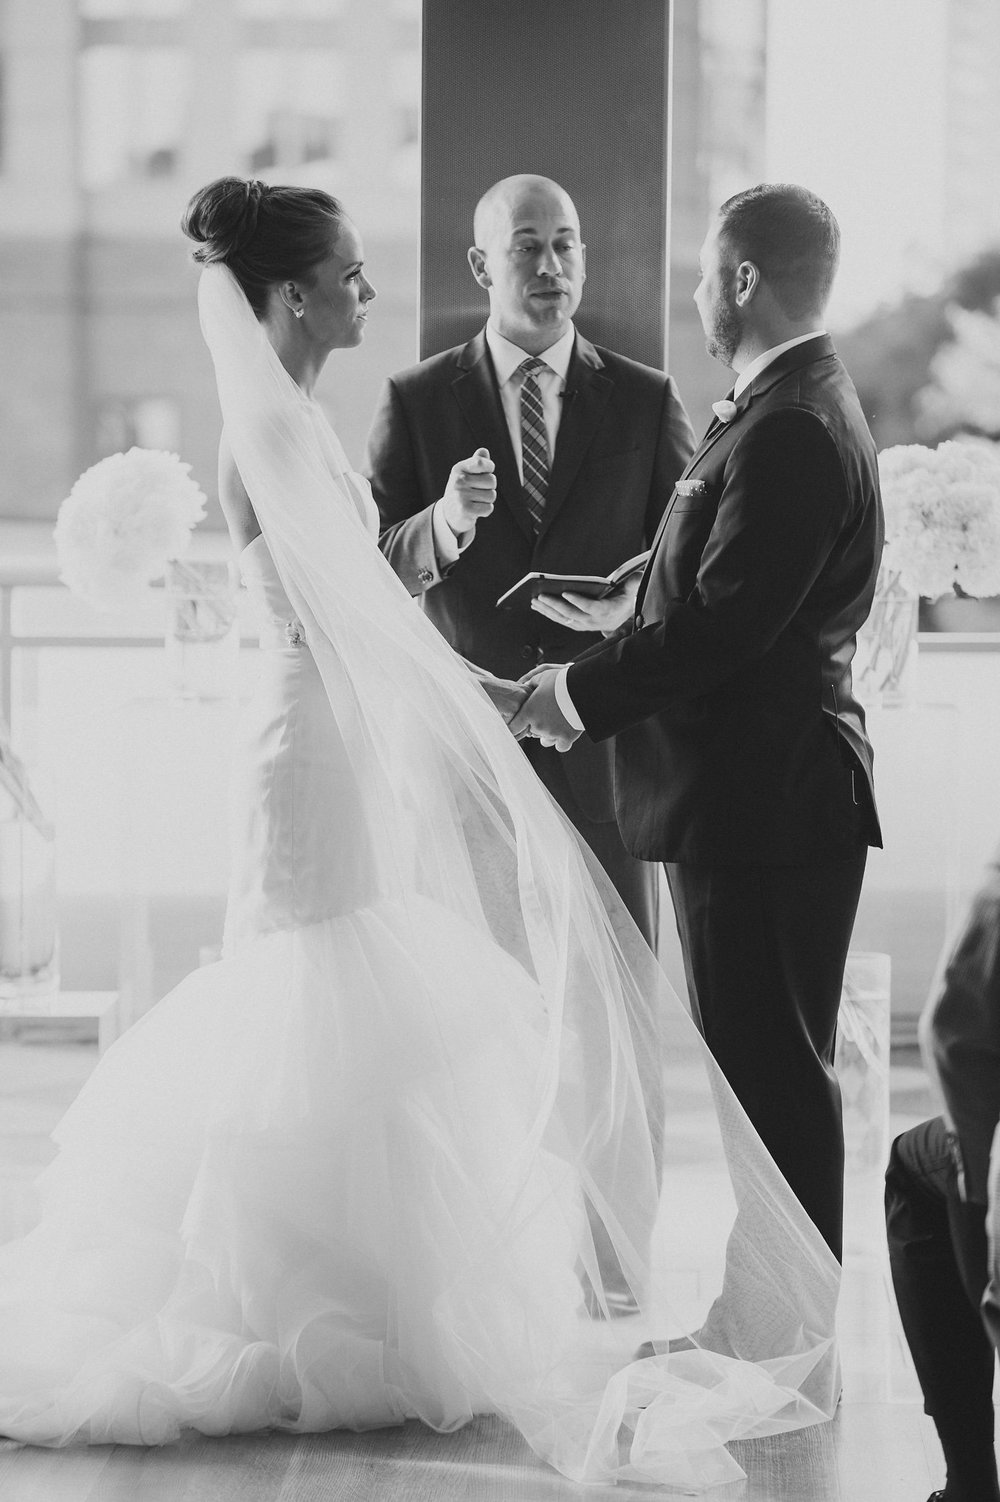 shelby&jordan|smitten&hooked|wedding|ceremony-098.jpg